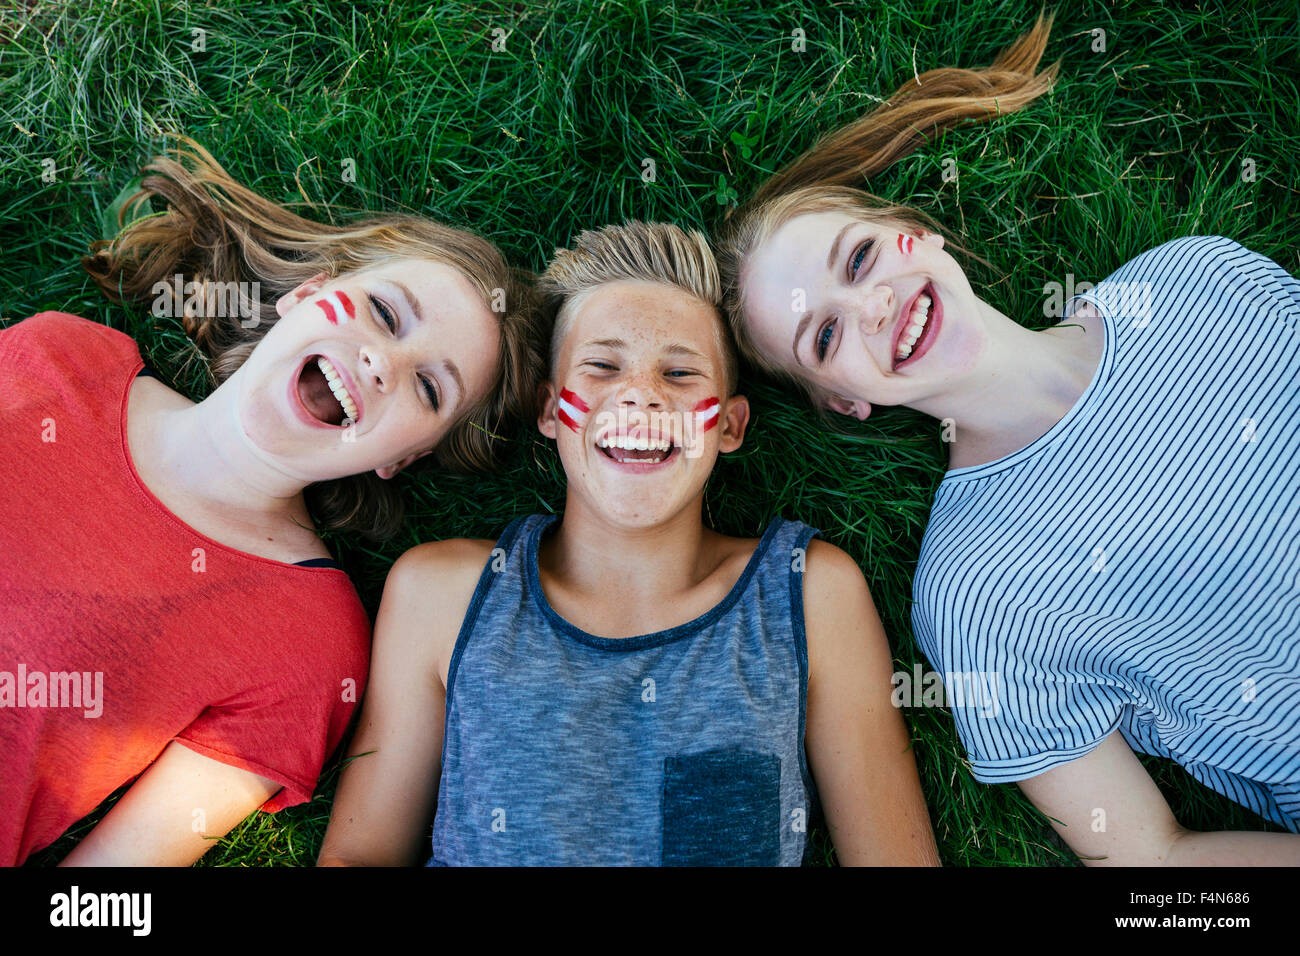 Austria, three teenagers with national colors painted on their cheeks lying on a meadow - Stock Image